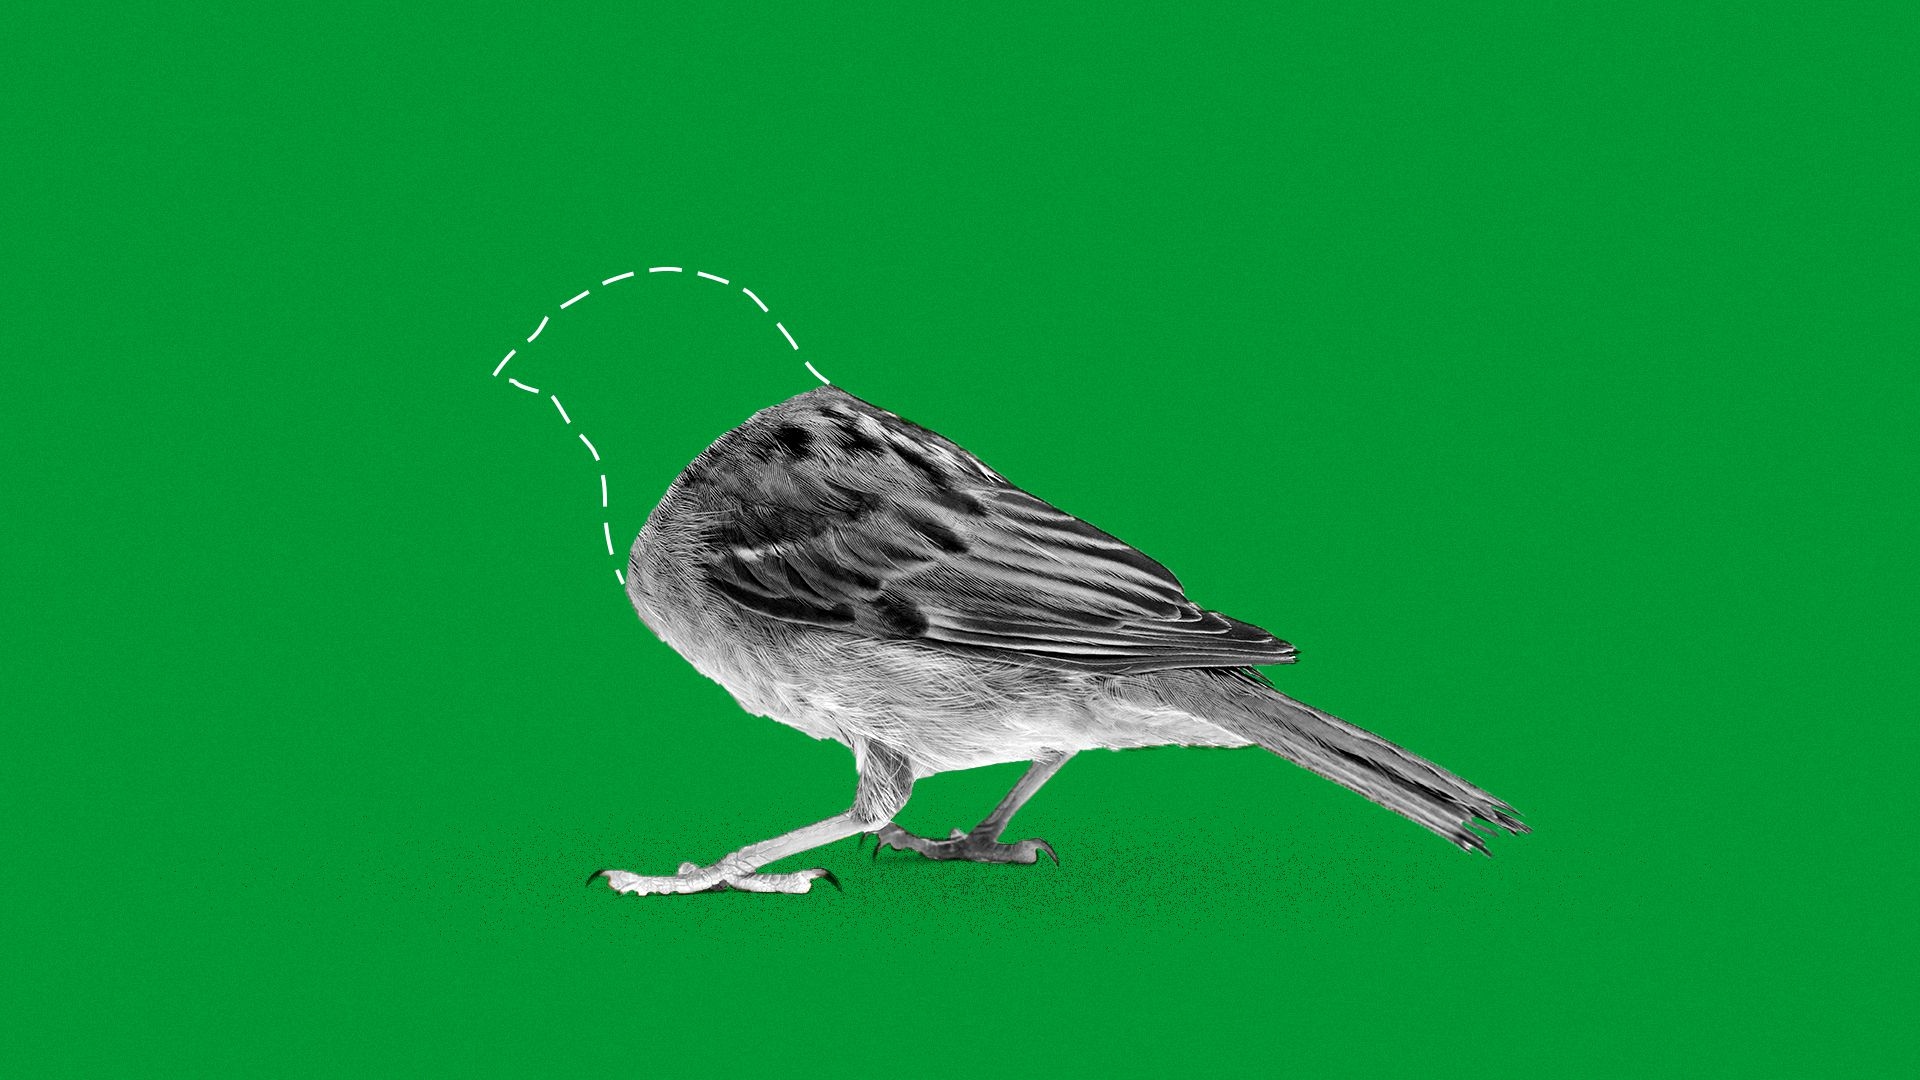 Illustration of vanishing bird